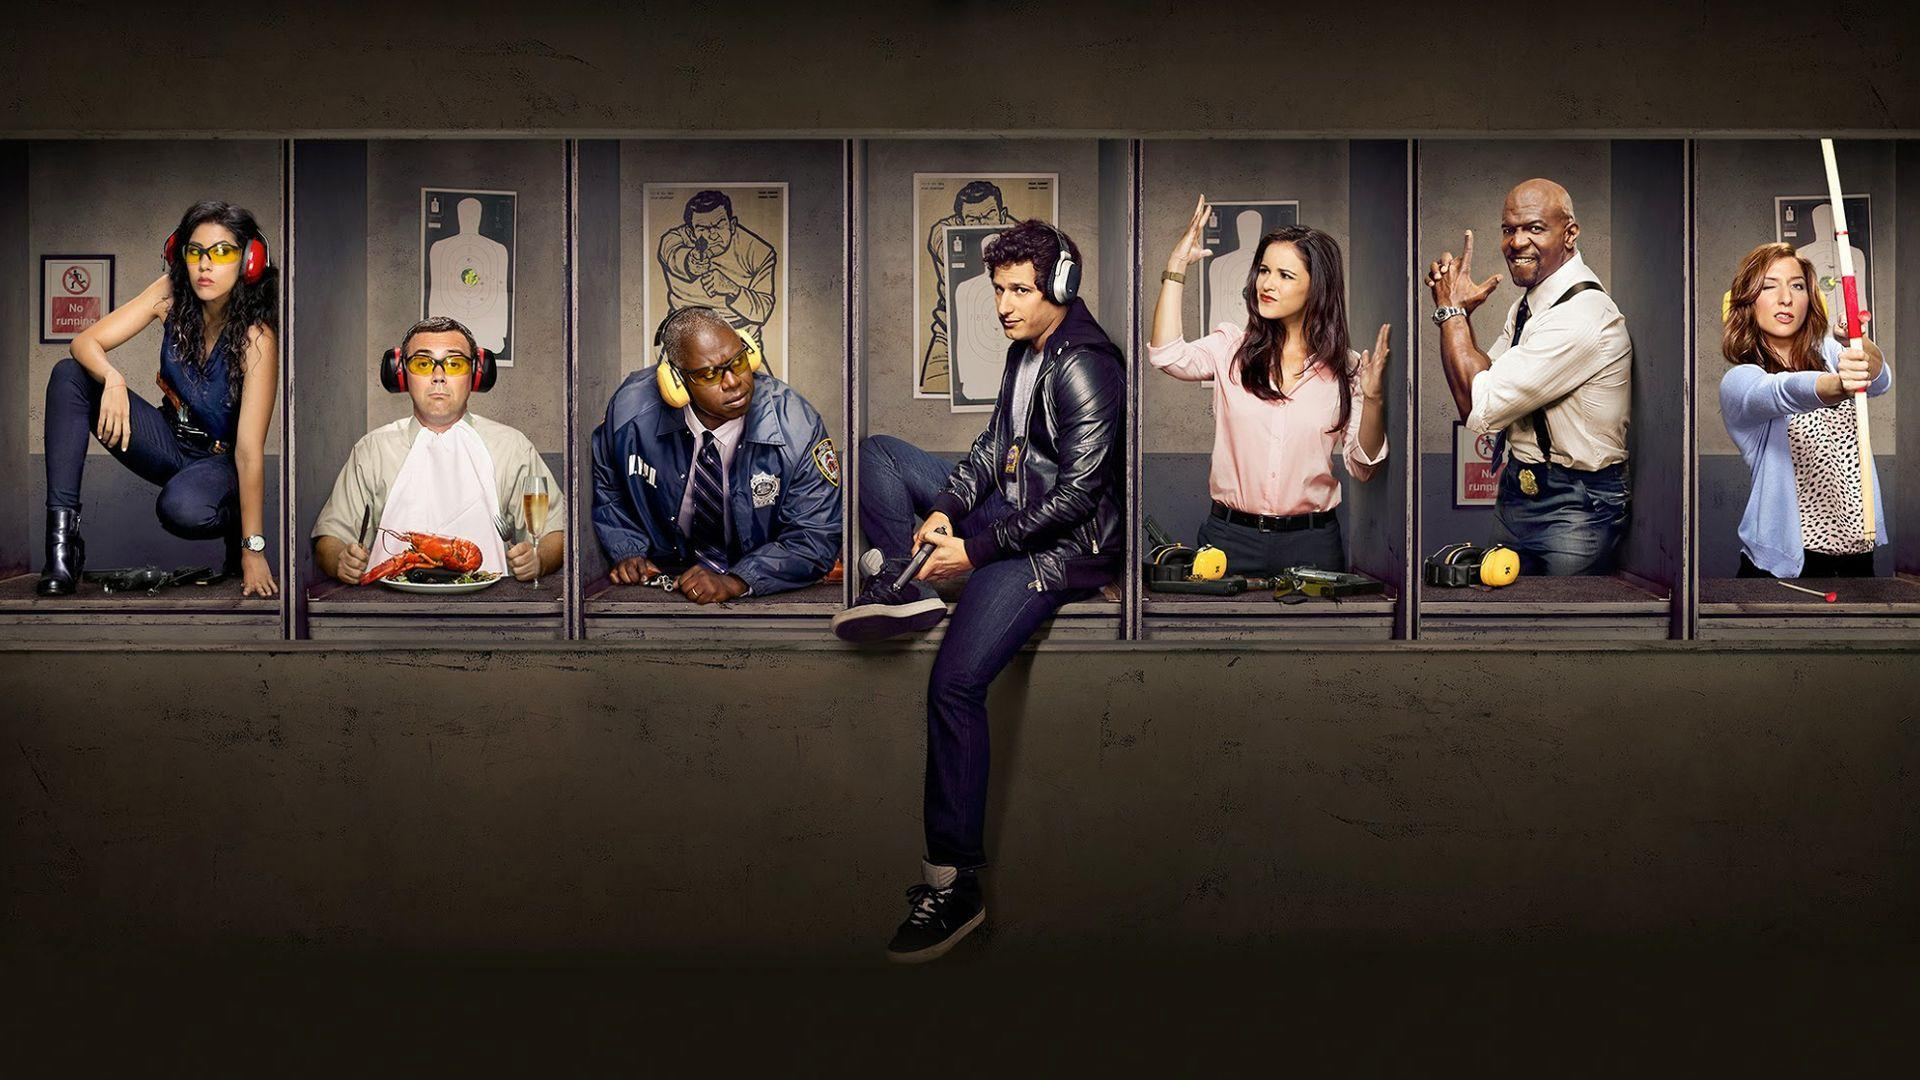 Brooklyn Nine-Nine Wallpapers, Pictures, Images